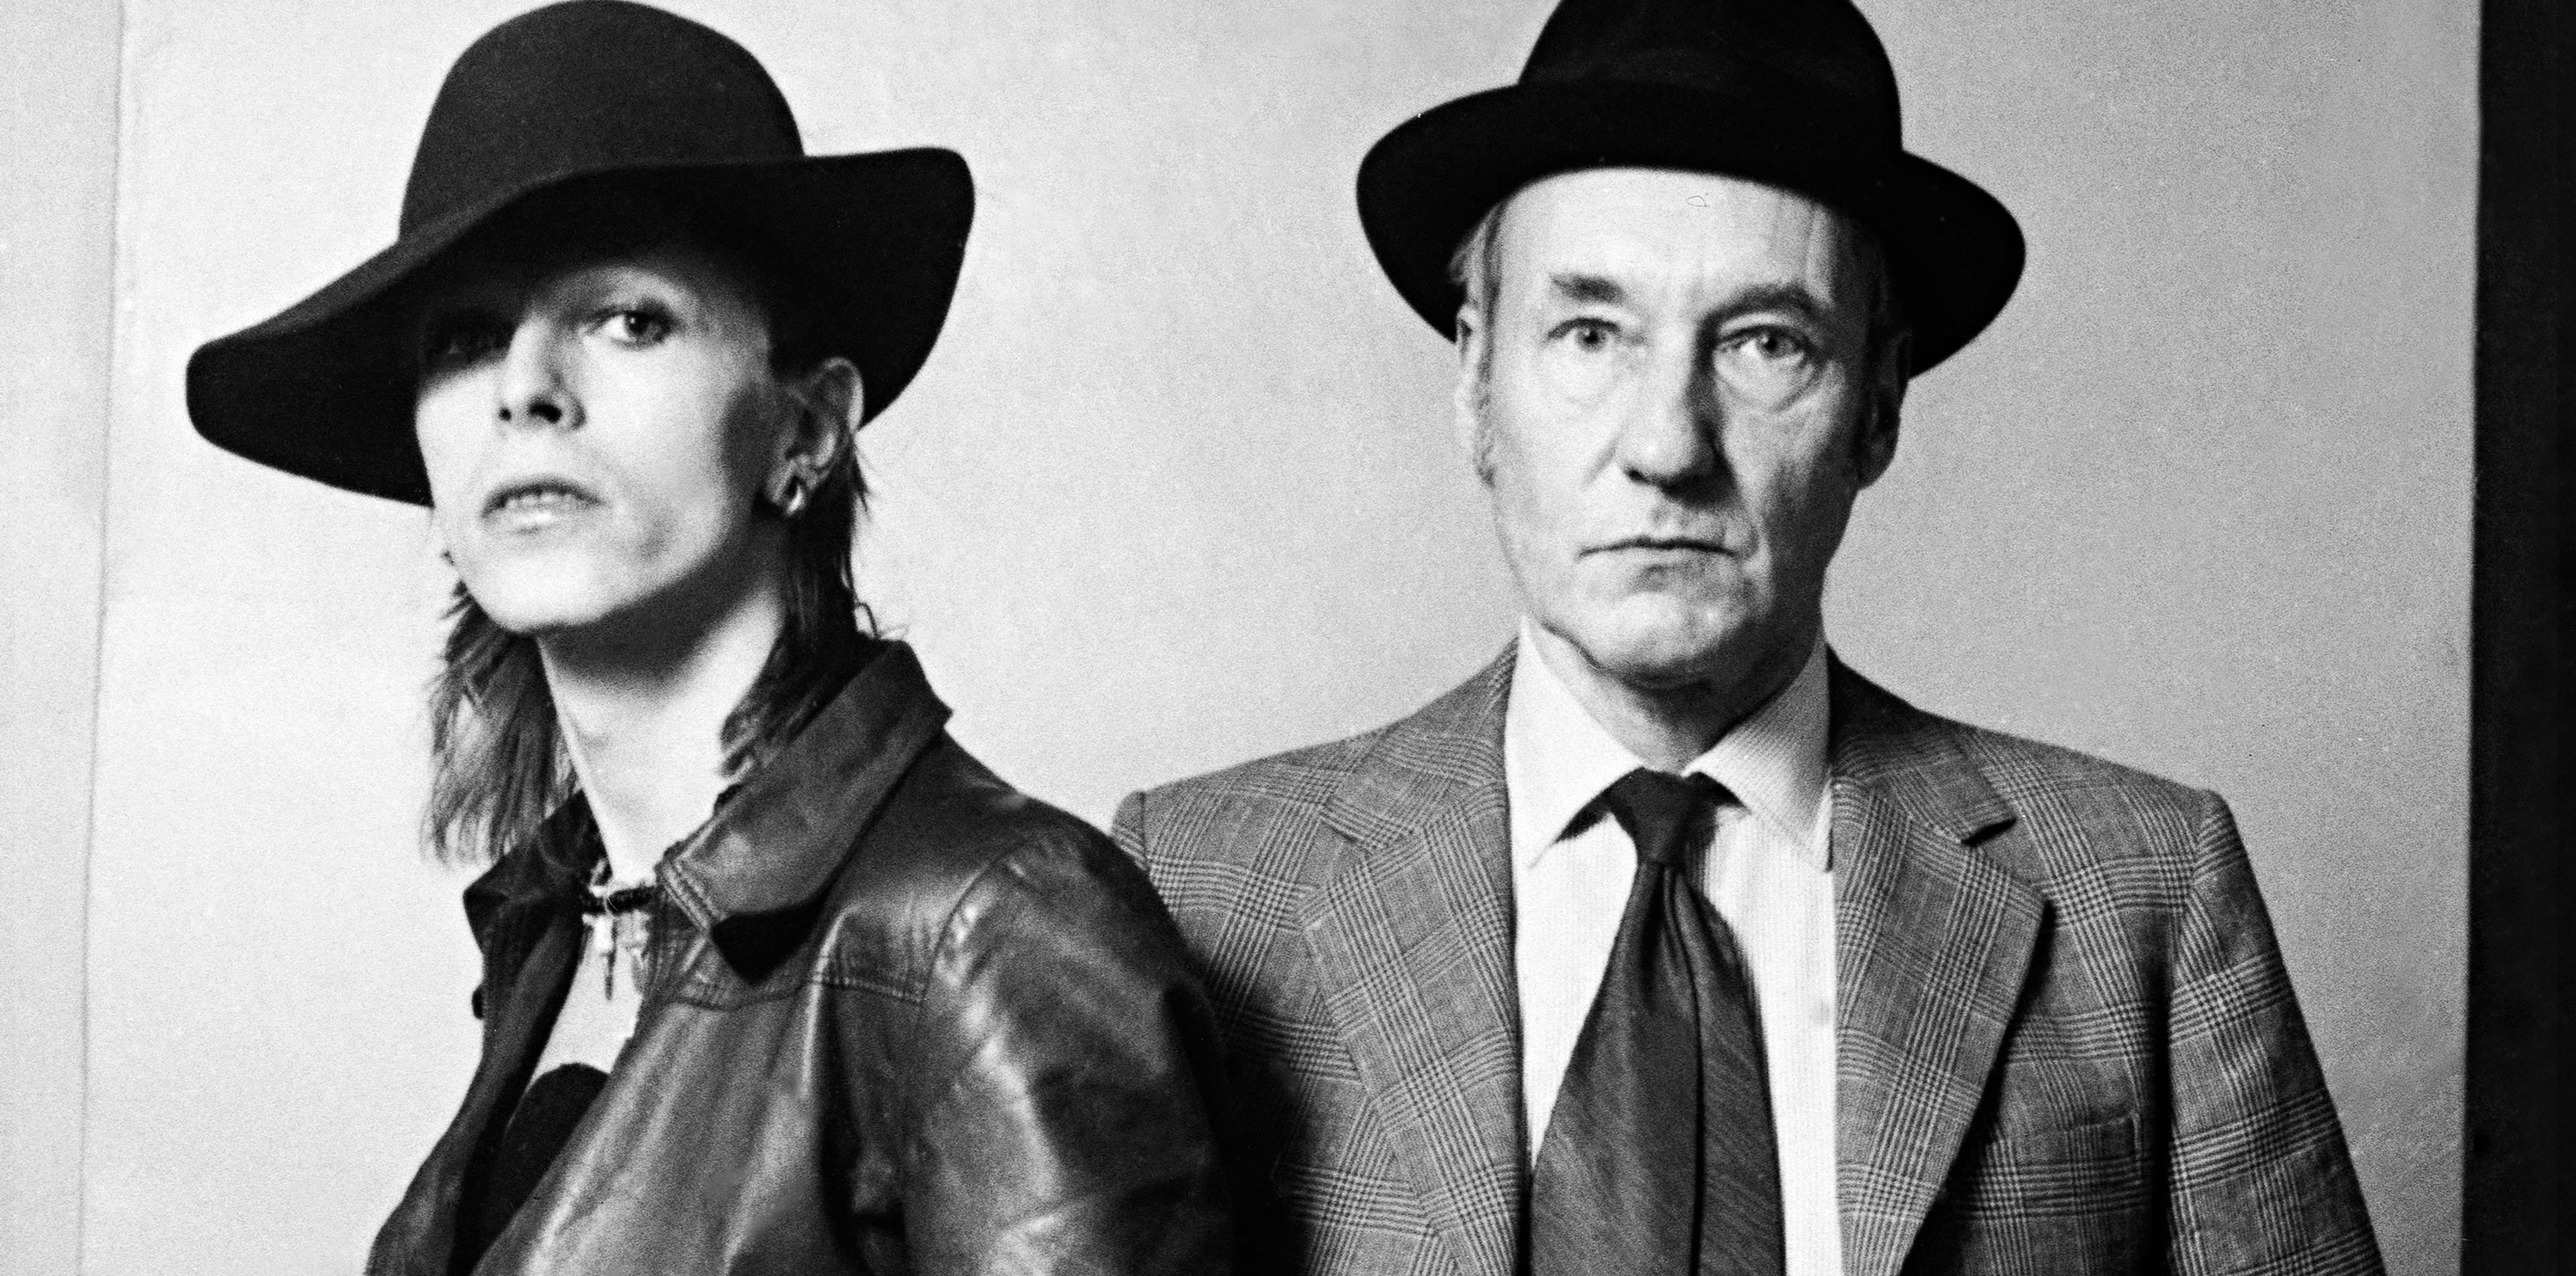 William-S-Burroughs-e-il-culto-del-rocknroll-slider